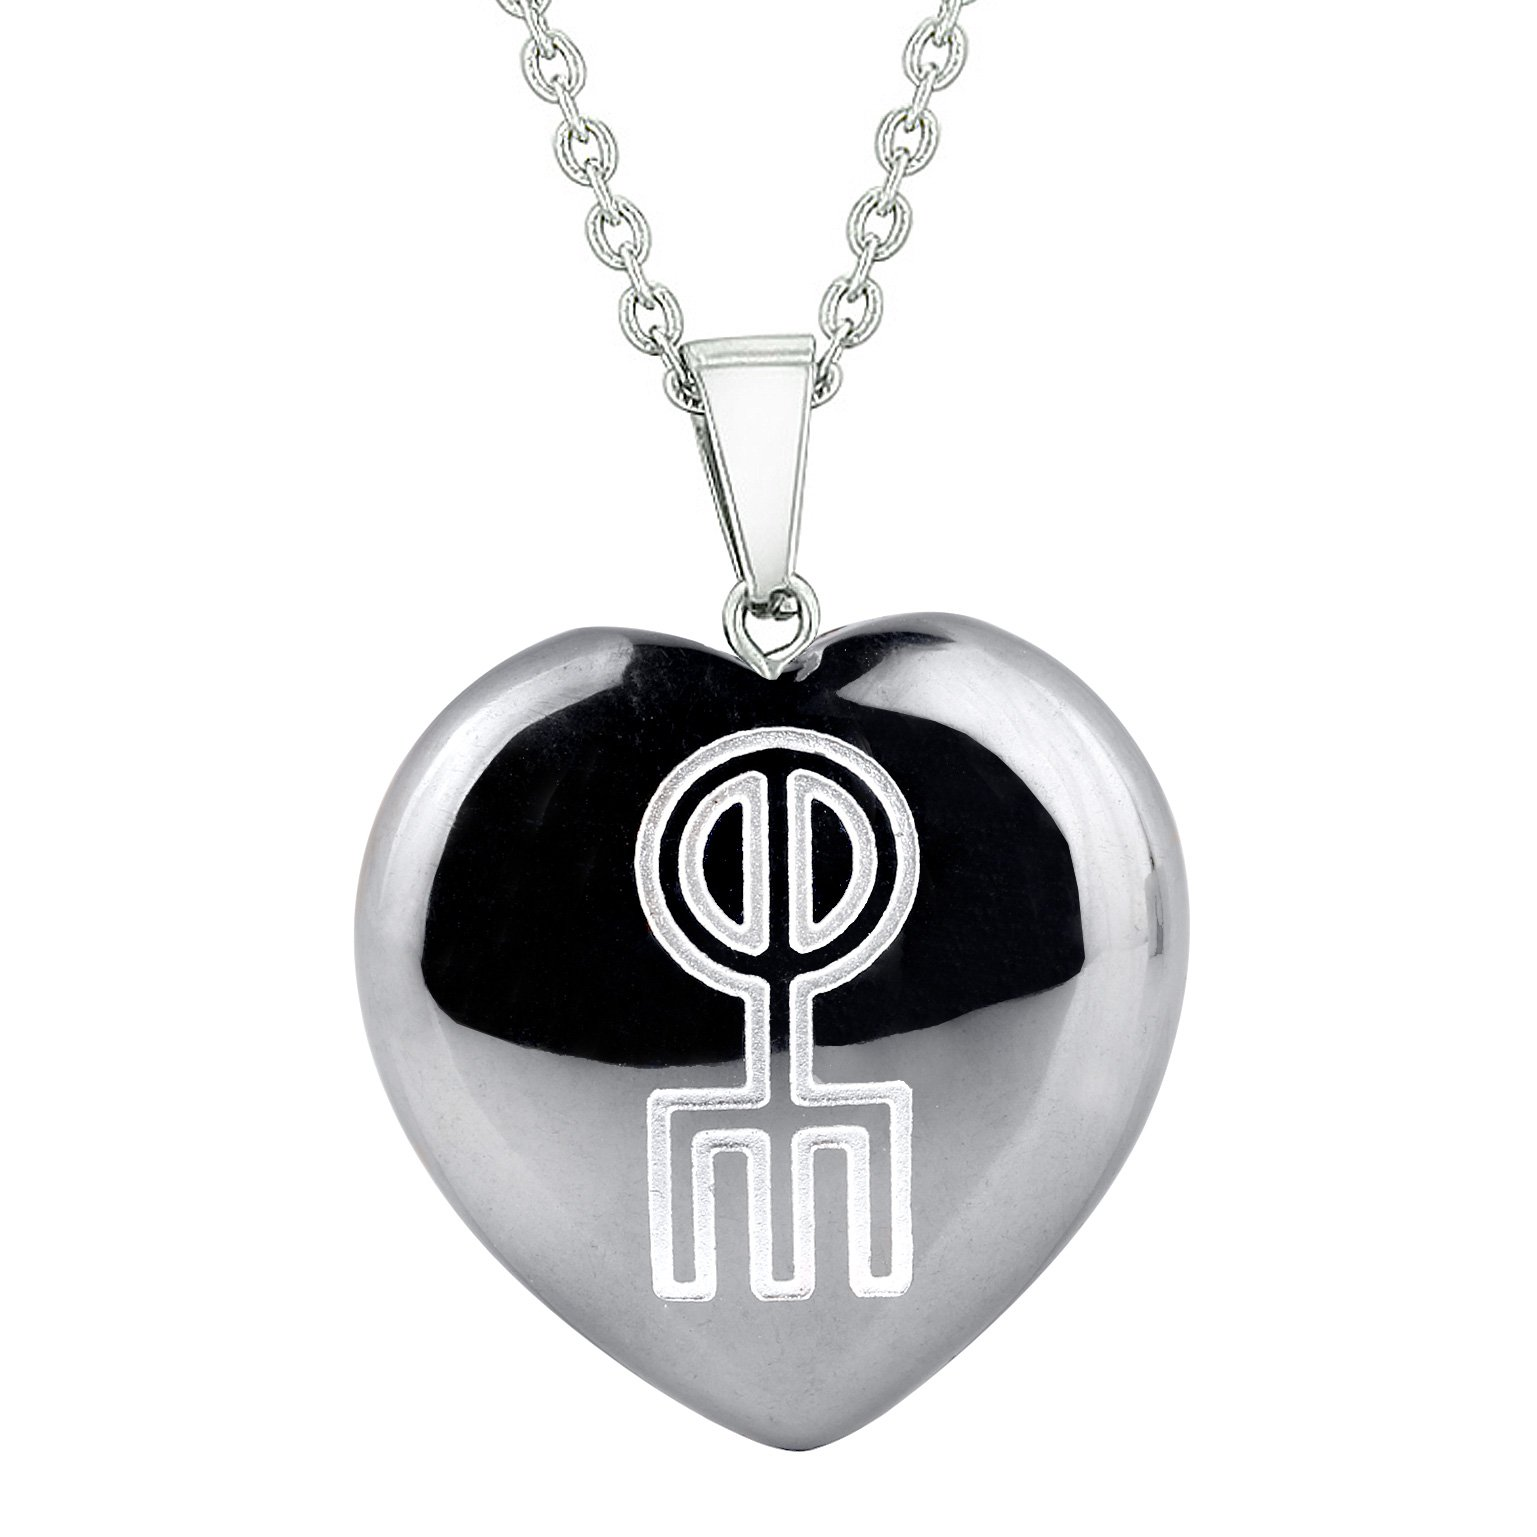 Amulet Norse Rune Love Spell Magic Powers Protection Energy Hematite Puffy Heart Pendant Necklace